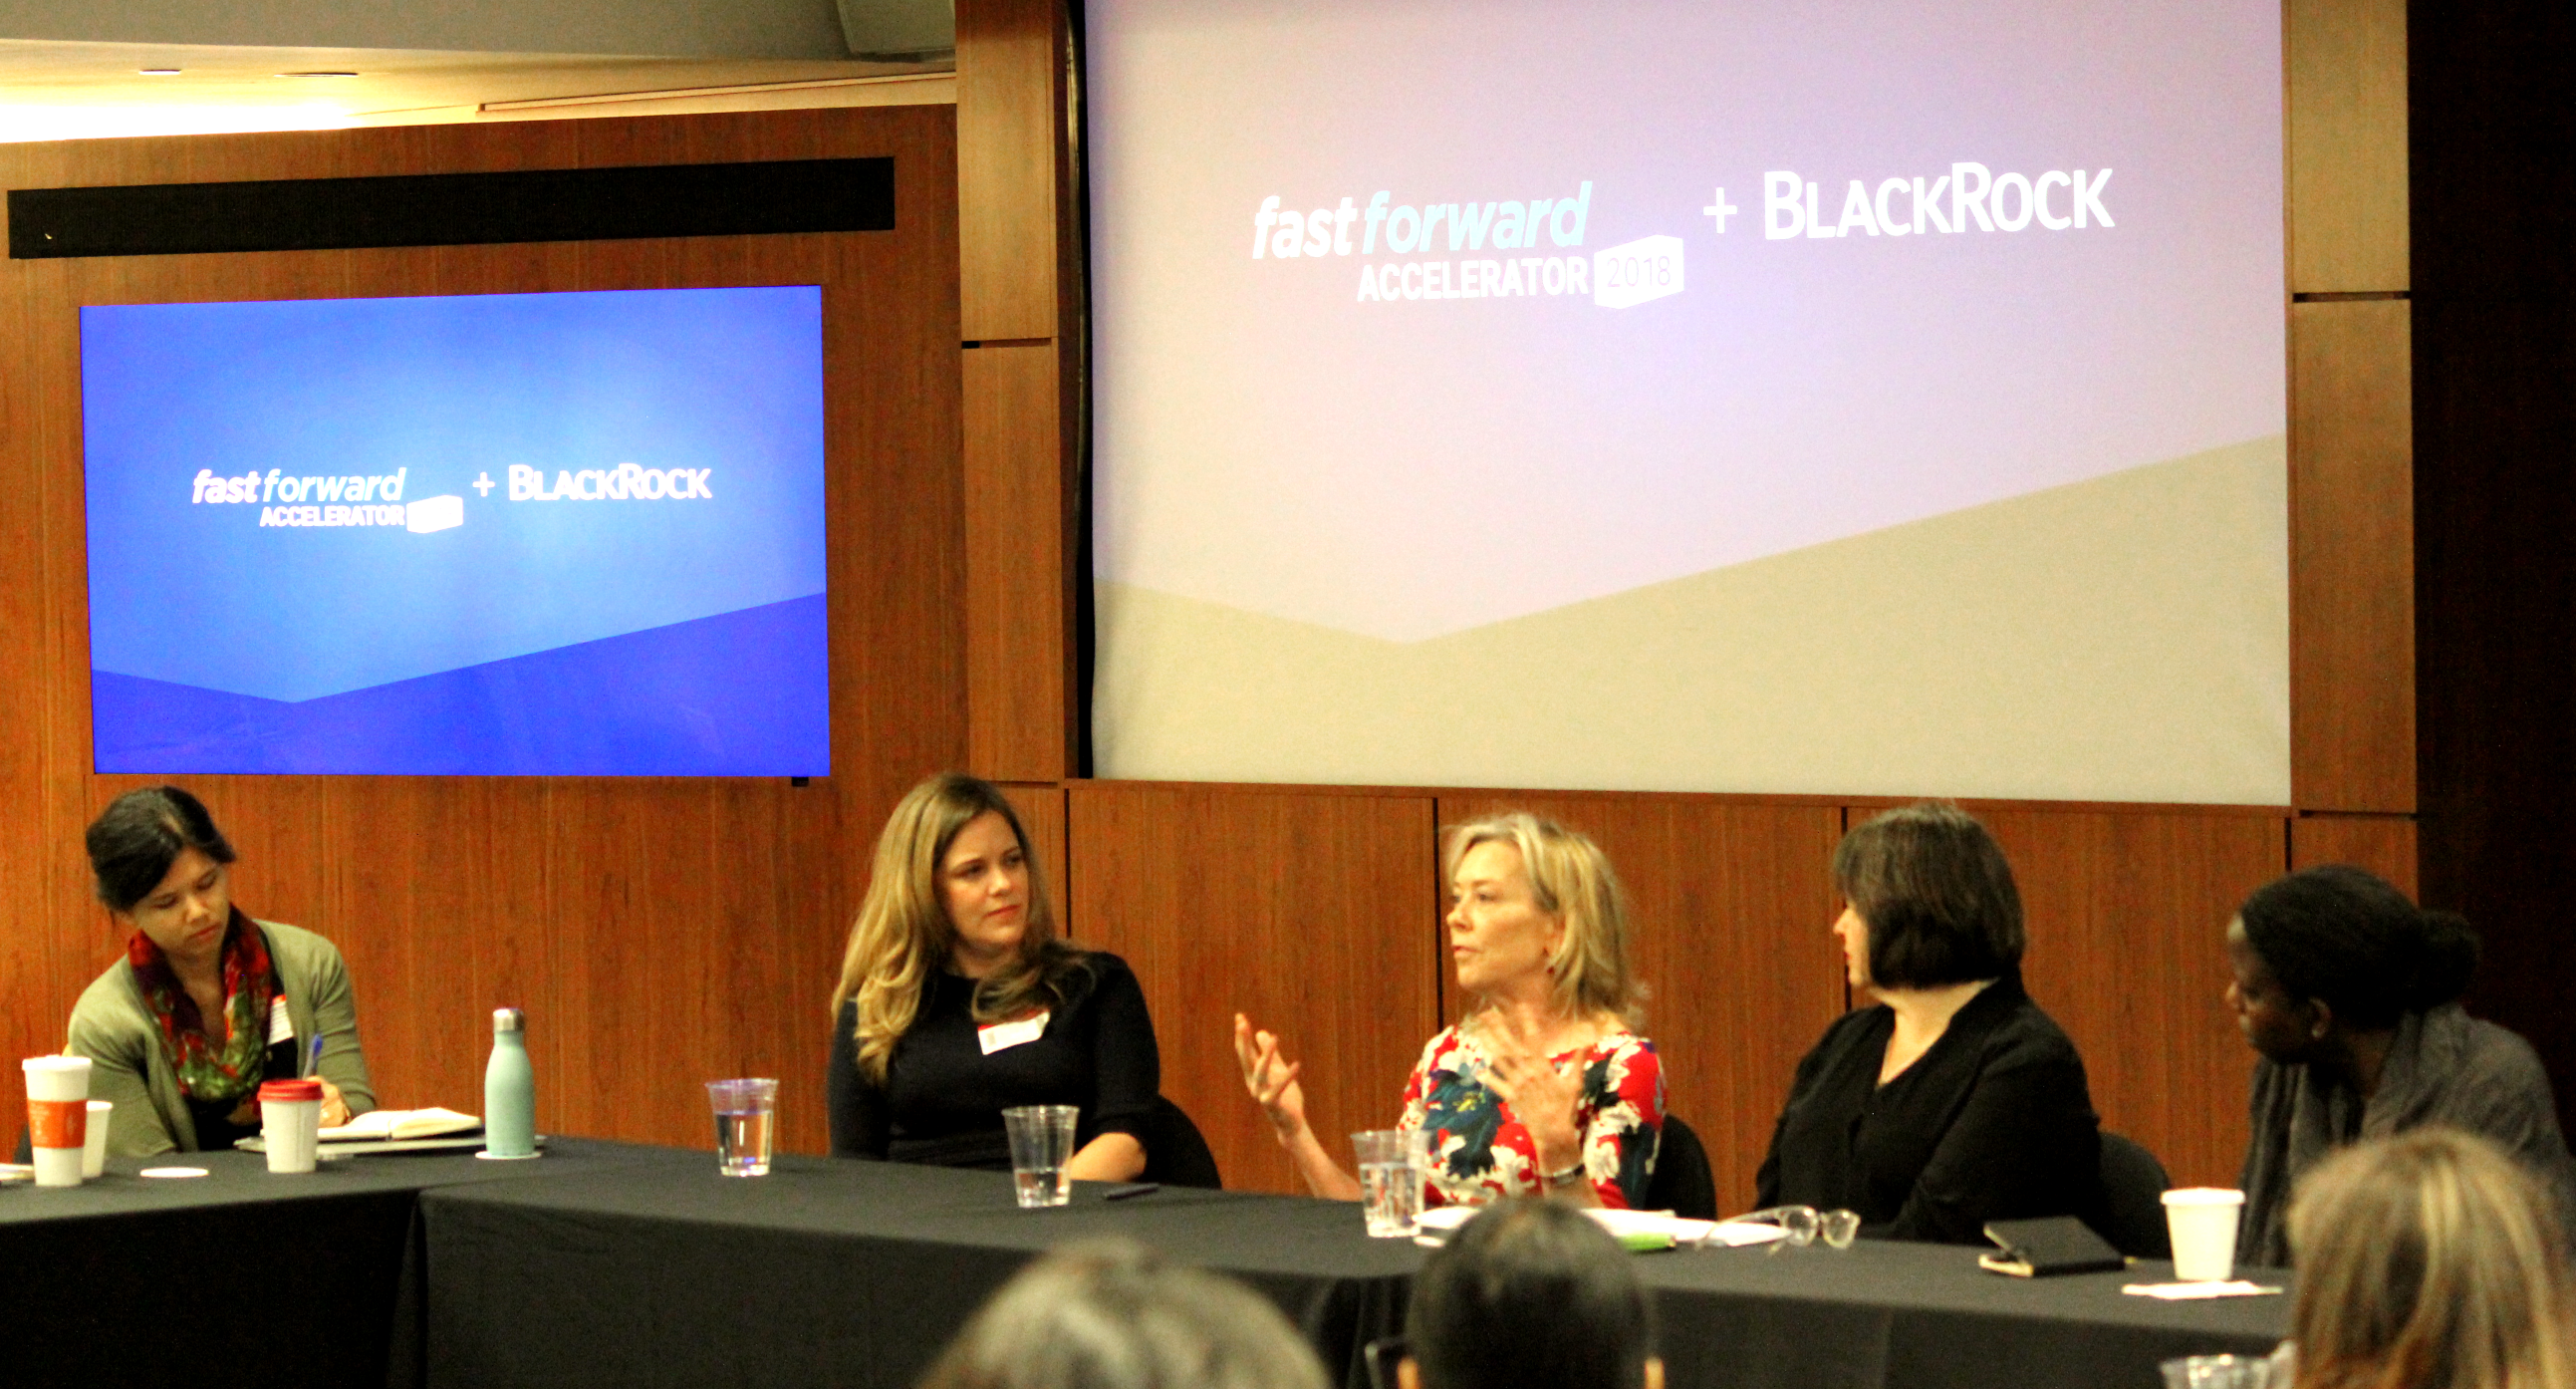 NYC Funders share fundraising advice